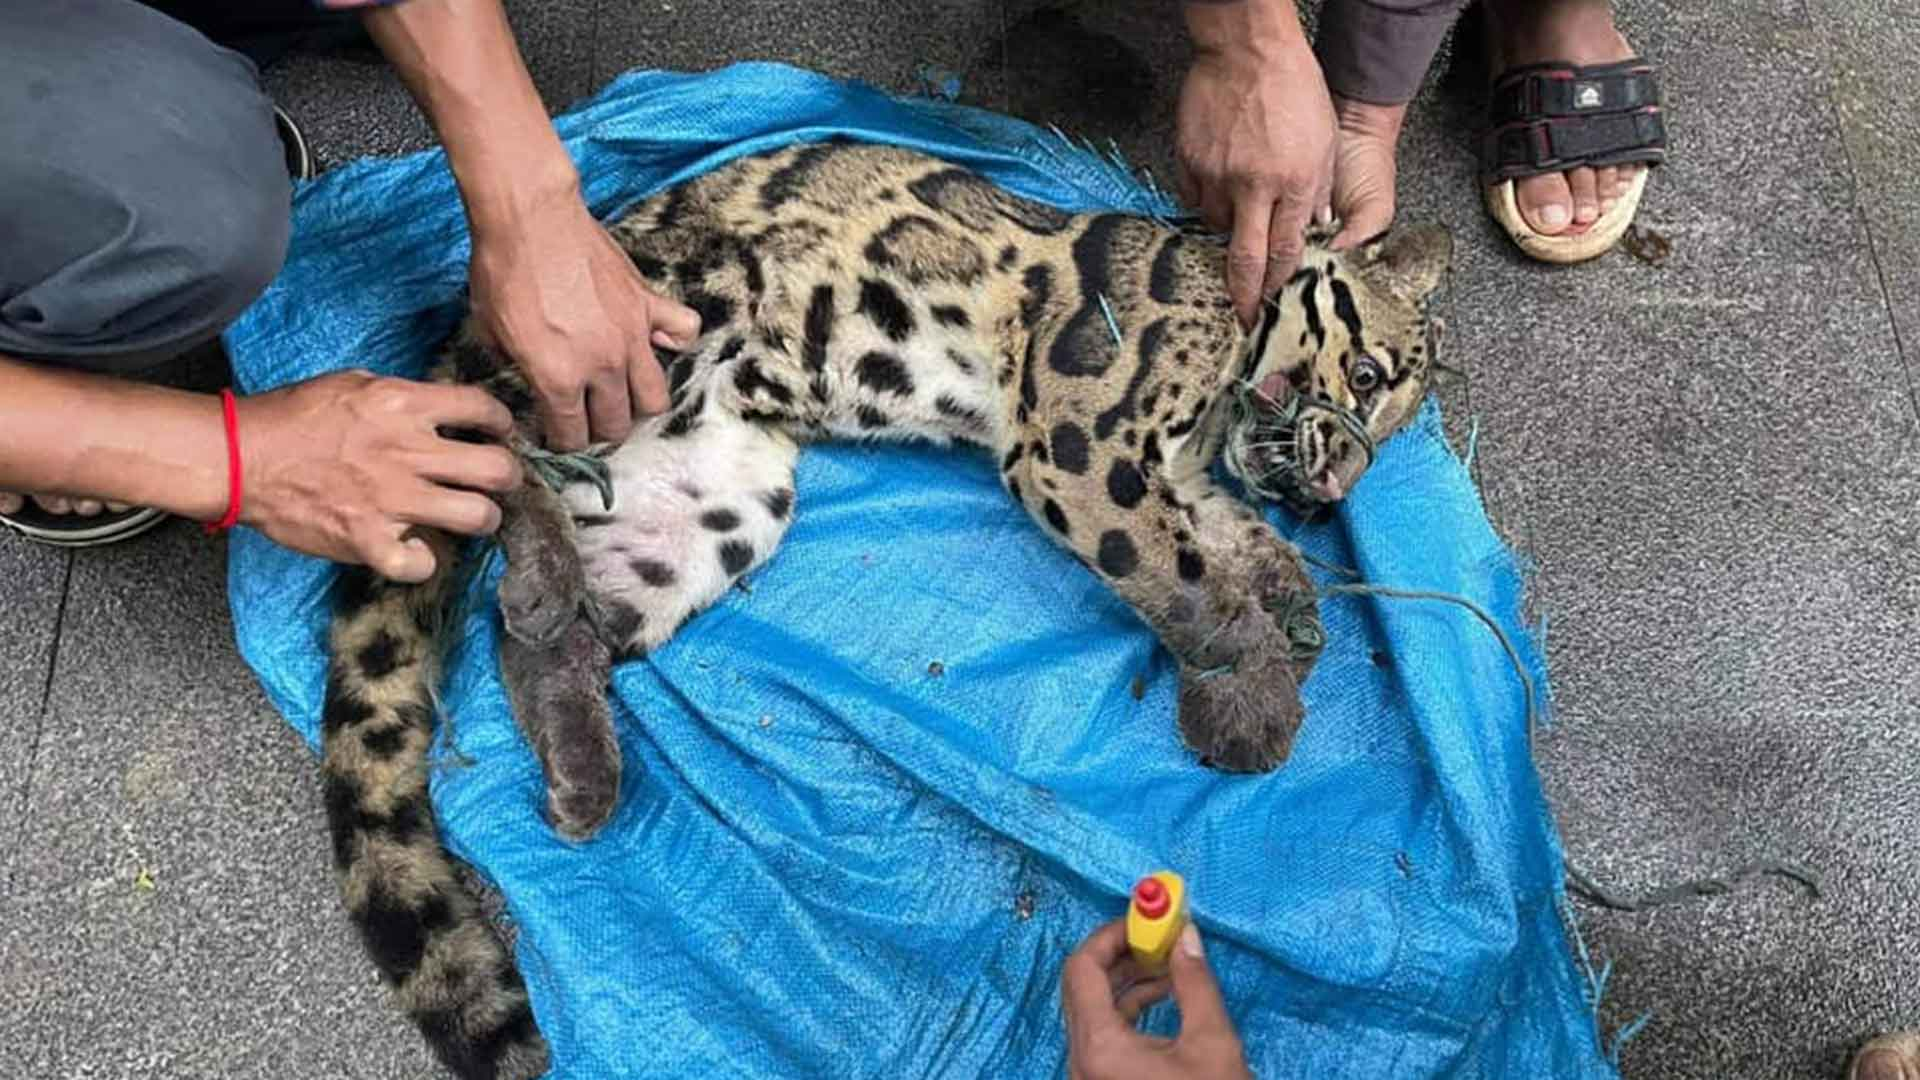 Snared Clouded Leopard dies from injuries